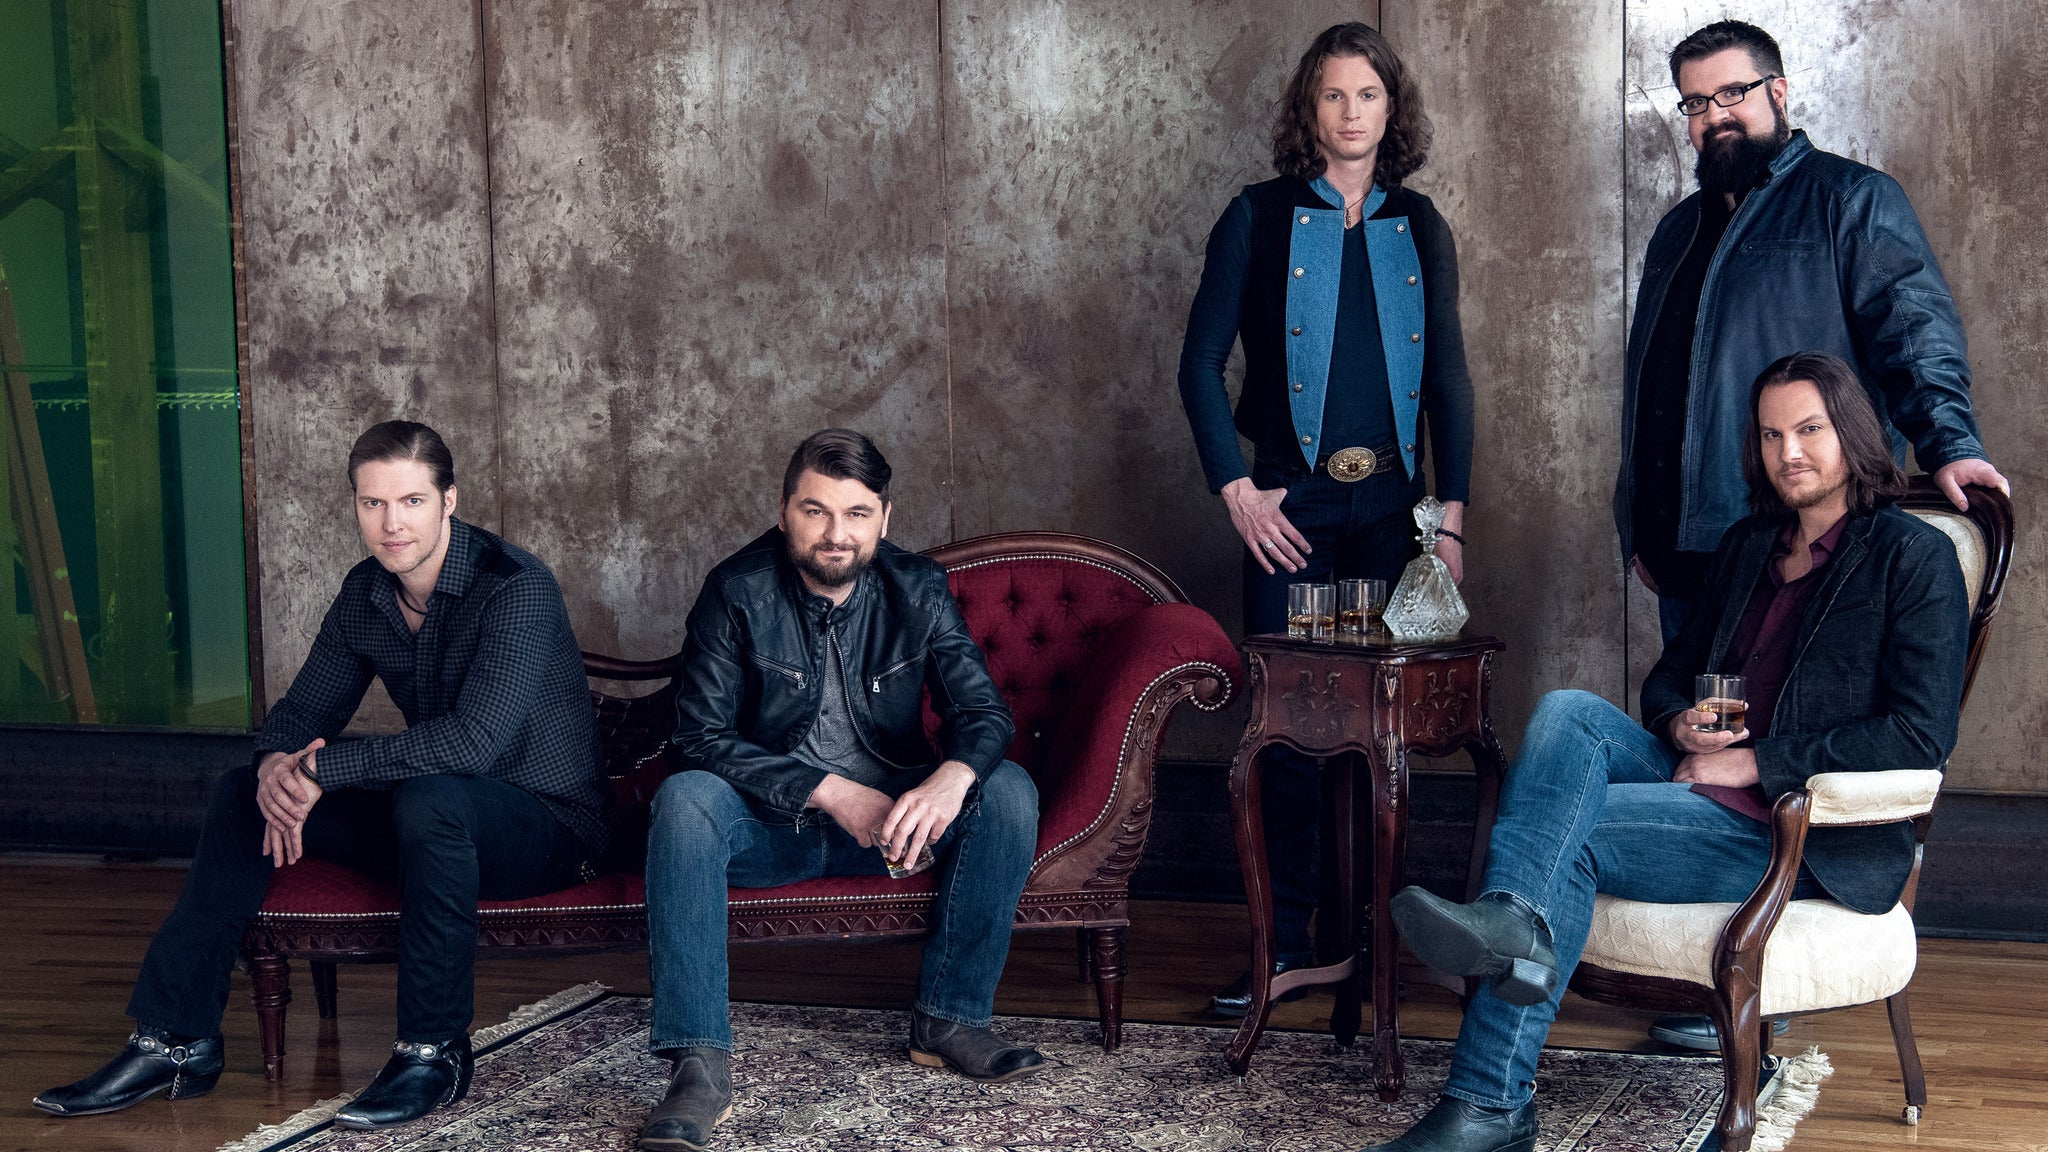 Home Free at Uptown Theatre Napa